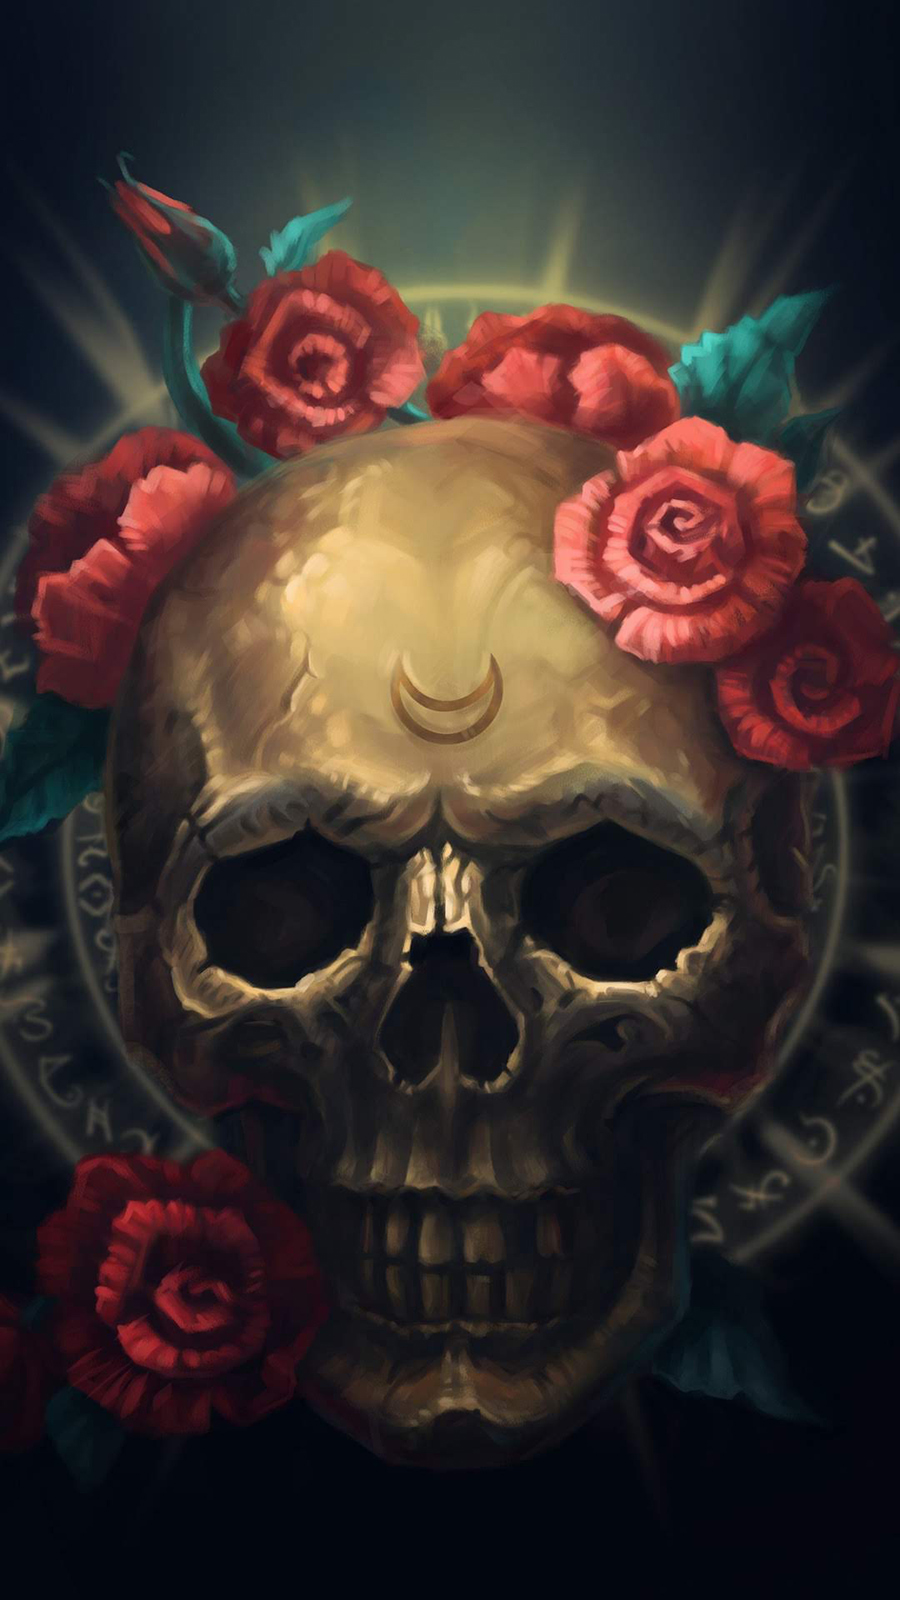 Skull Wallpapers Free Download